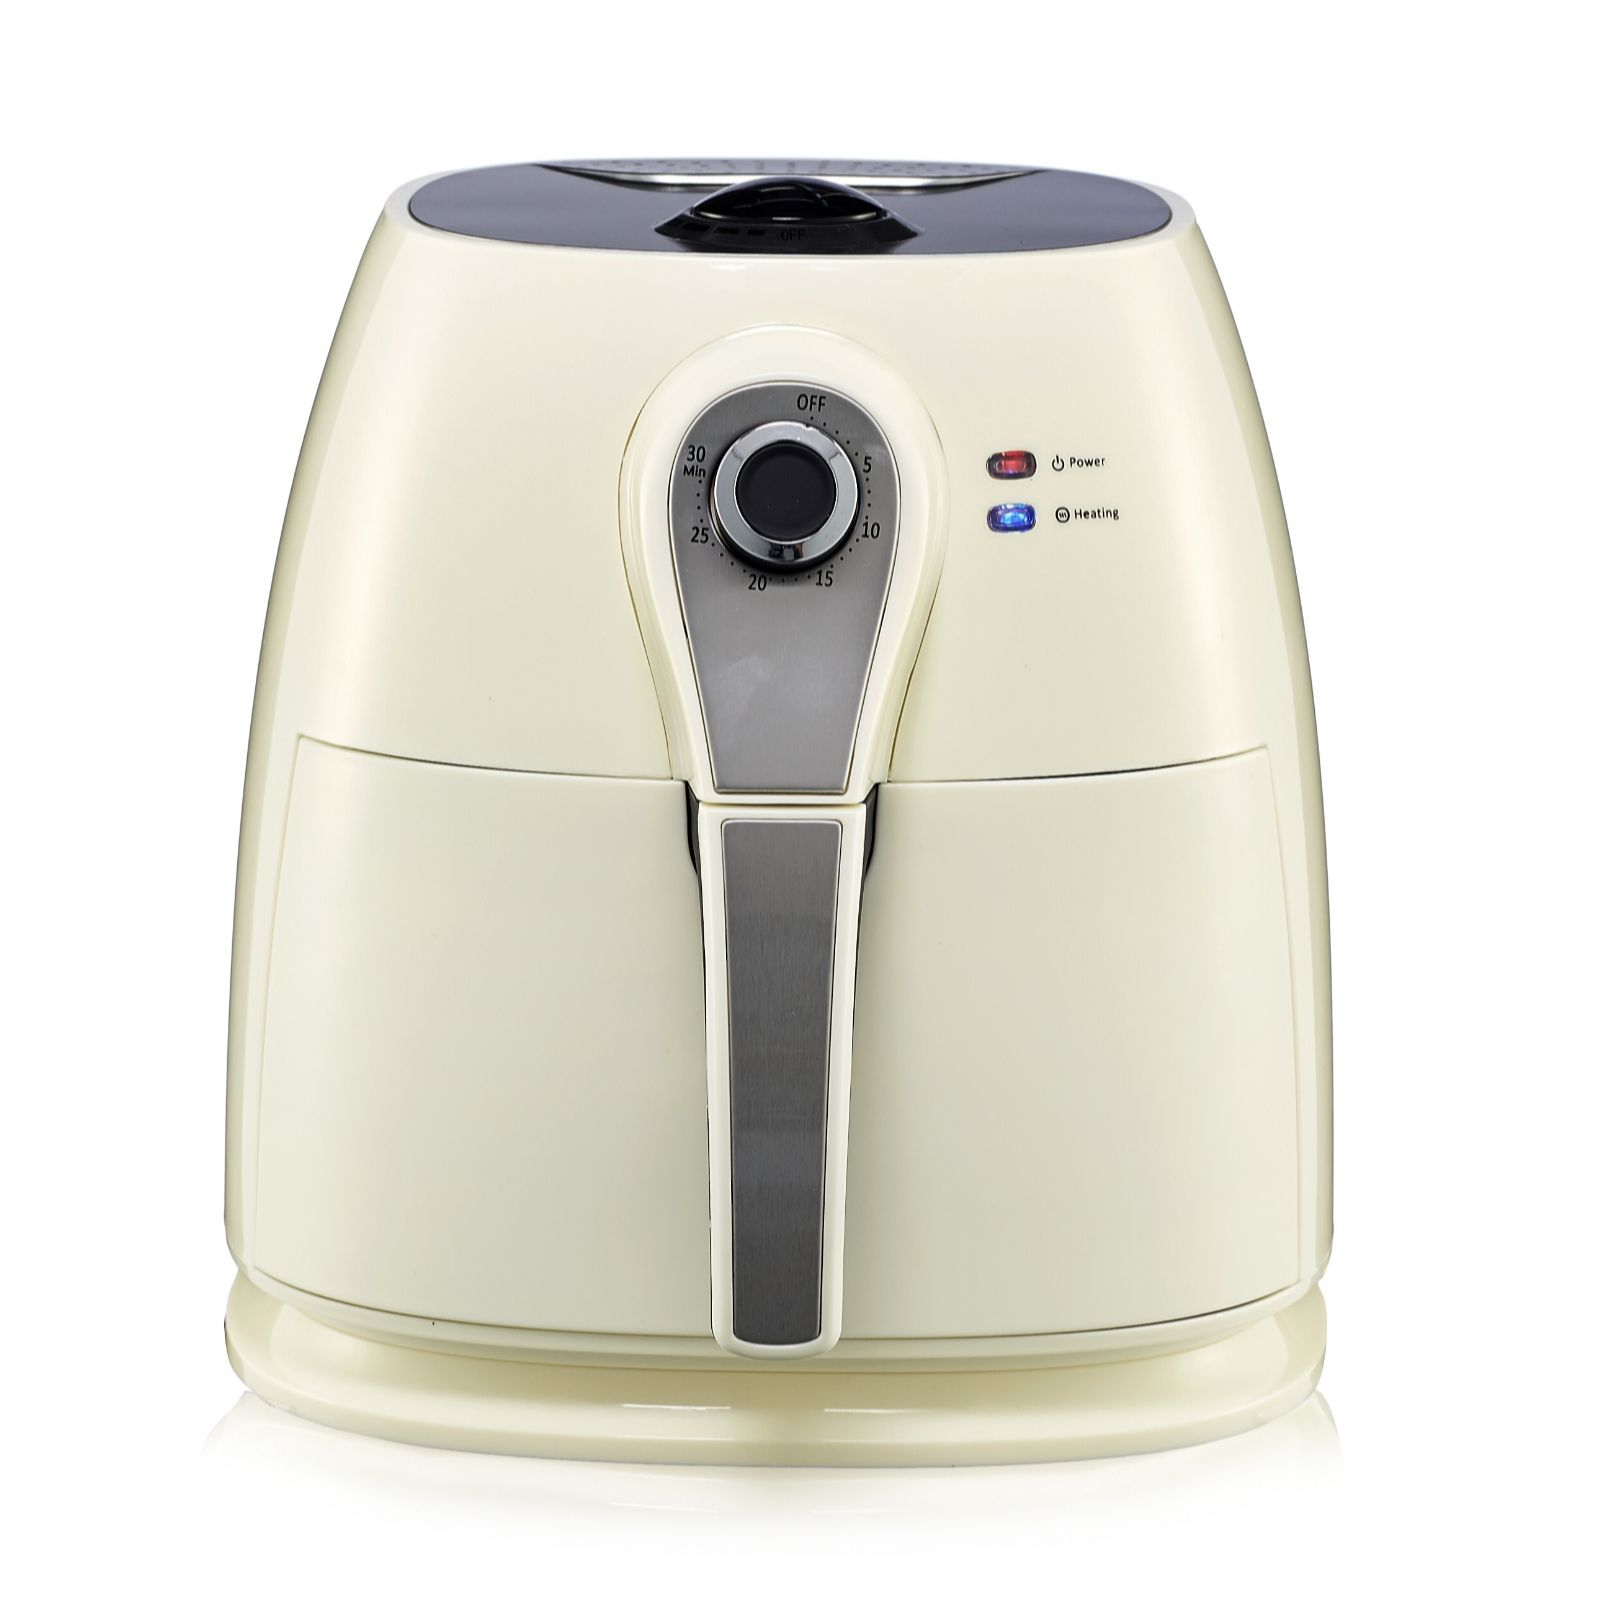 Cook S Essentials Air Fryer With Frying Basket Grill Rack Page 1